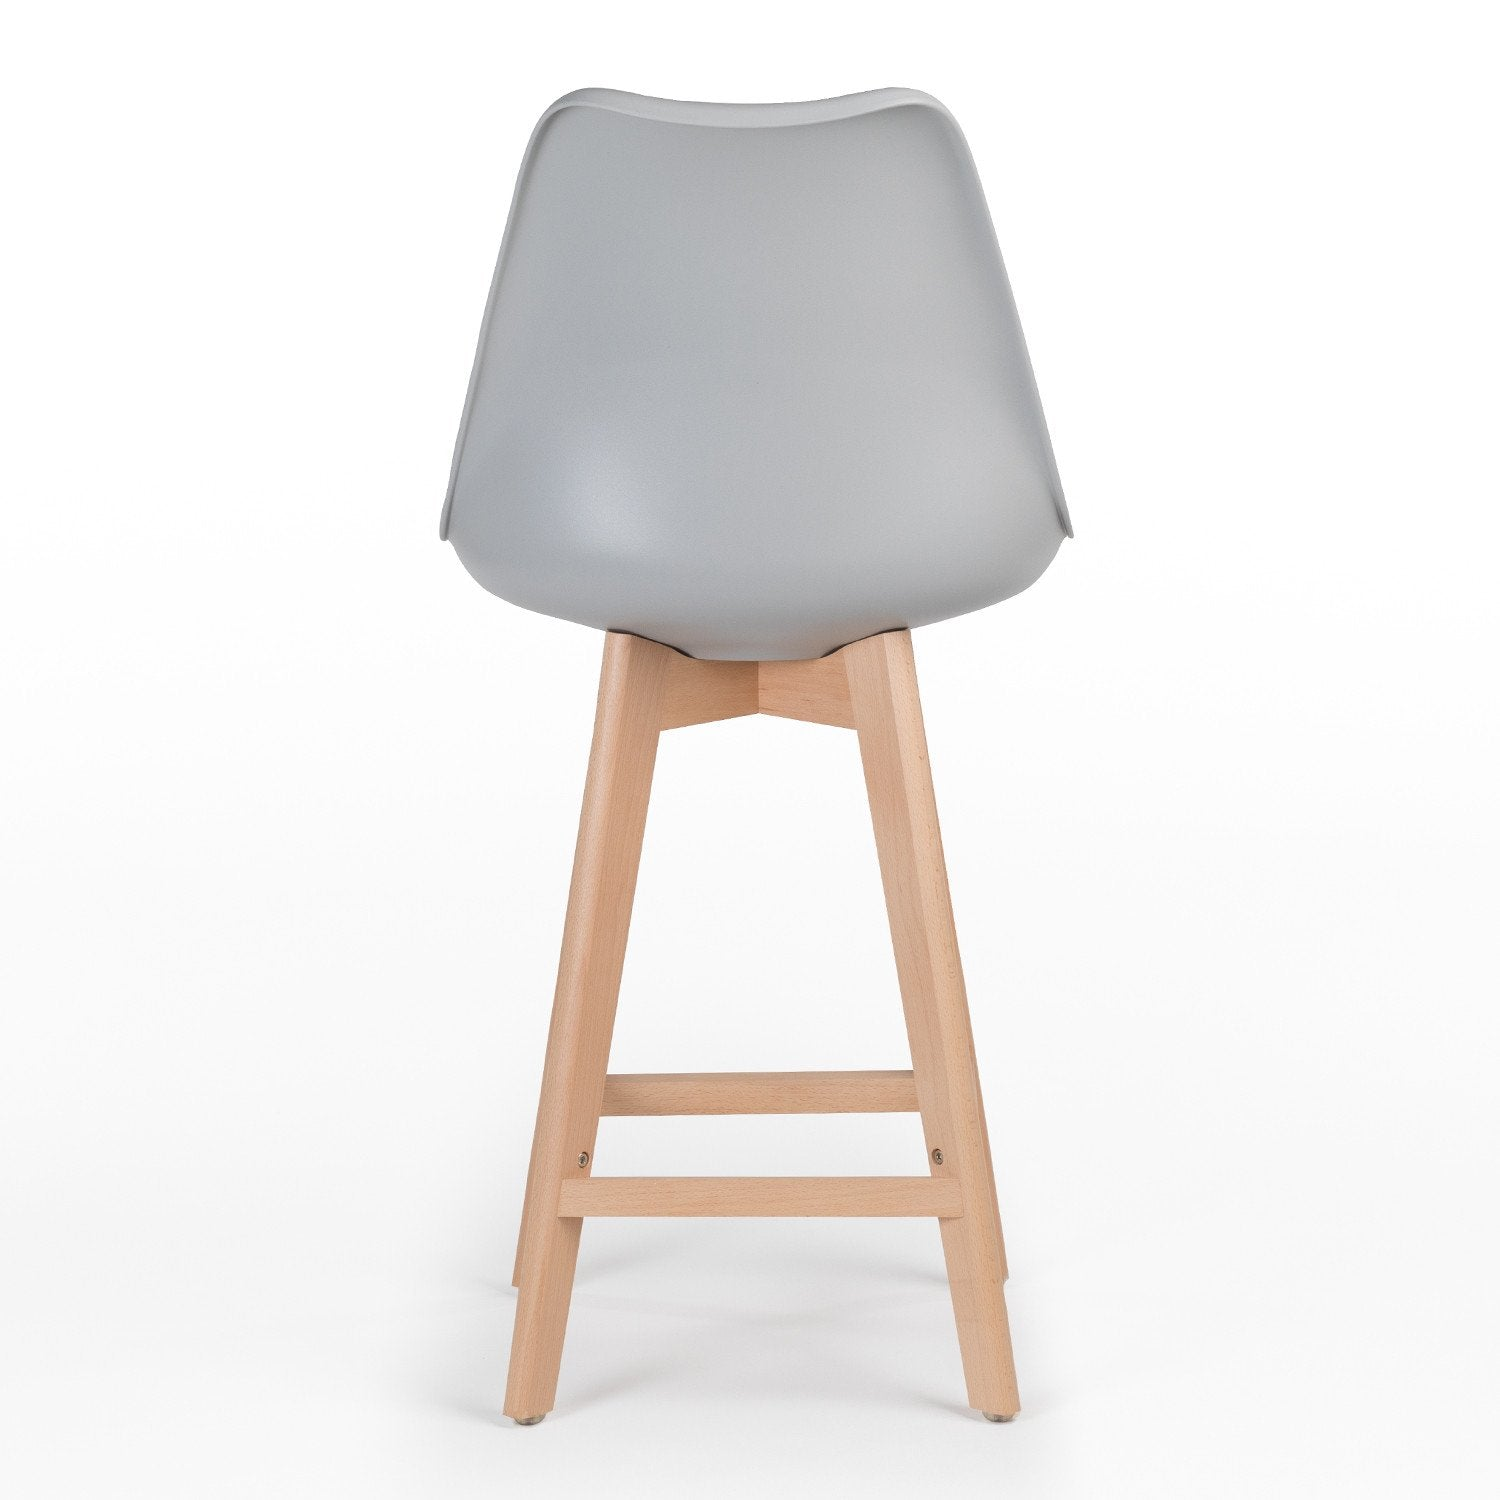 Charles Ray Eames Style I- DSB Soft Coushion  Bar Stool Square Legs  - Light Grey